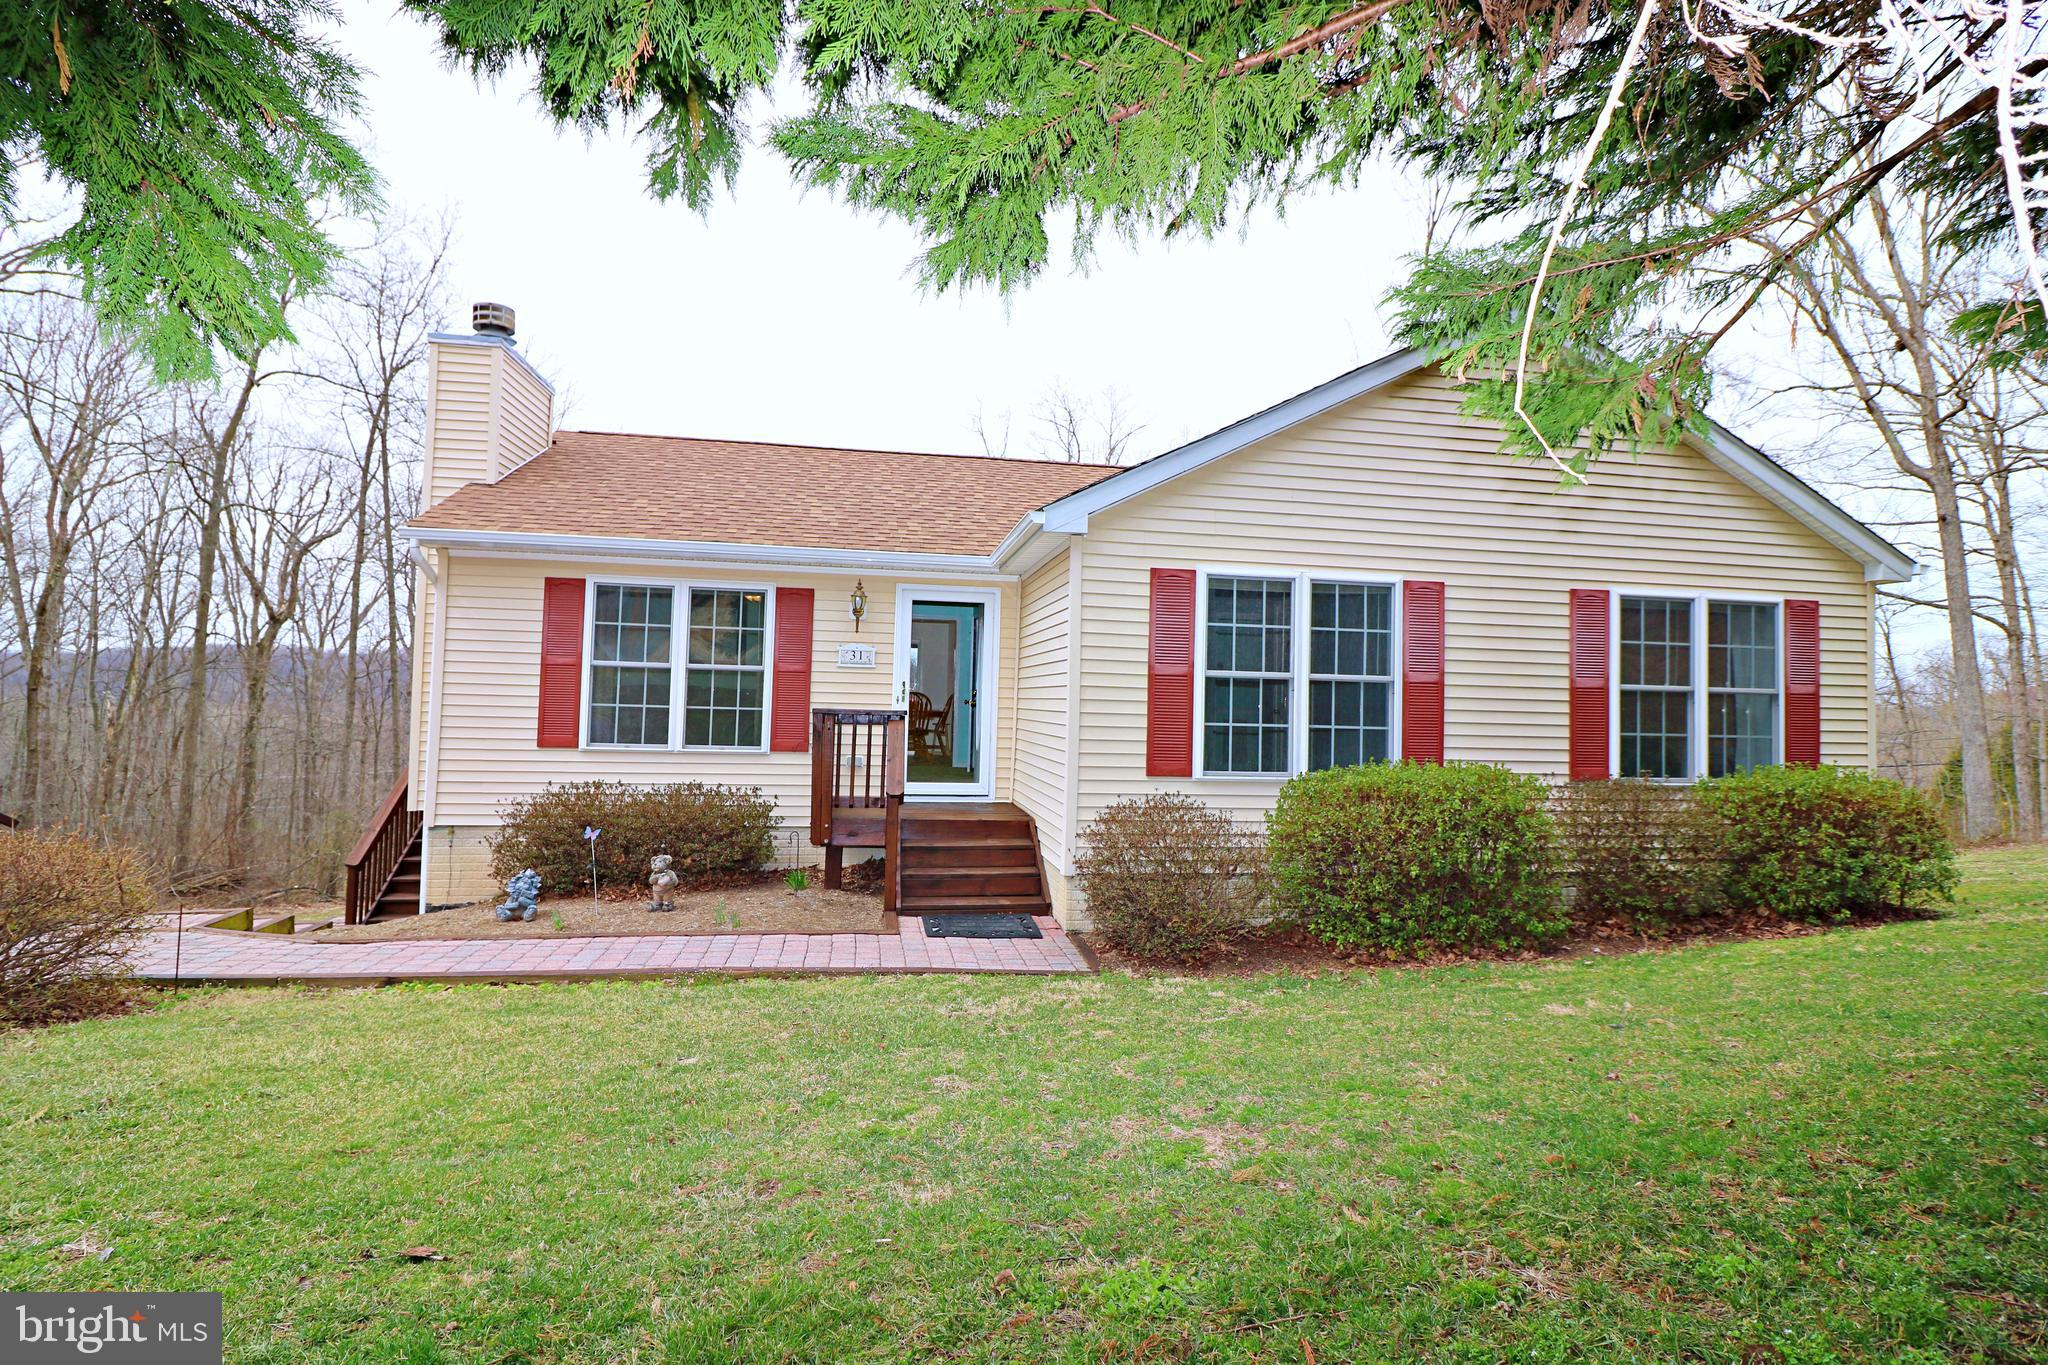 Conveniently nestled inside Gate 1 of the Shannondale Community in Jefferson County WV sits this 3-b